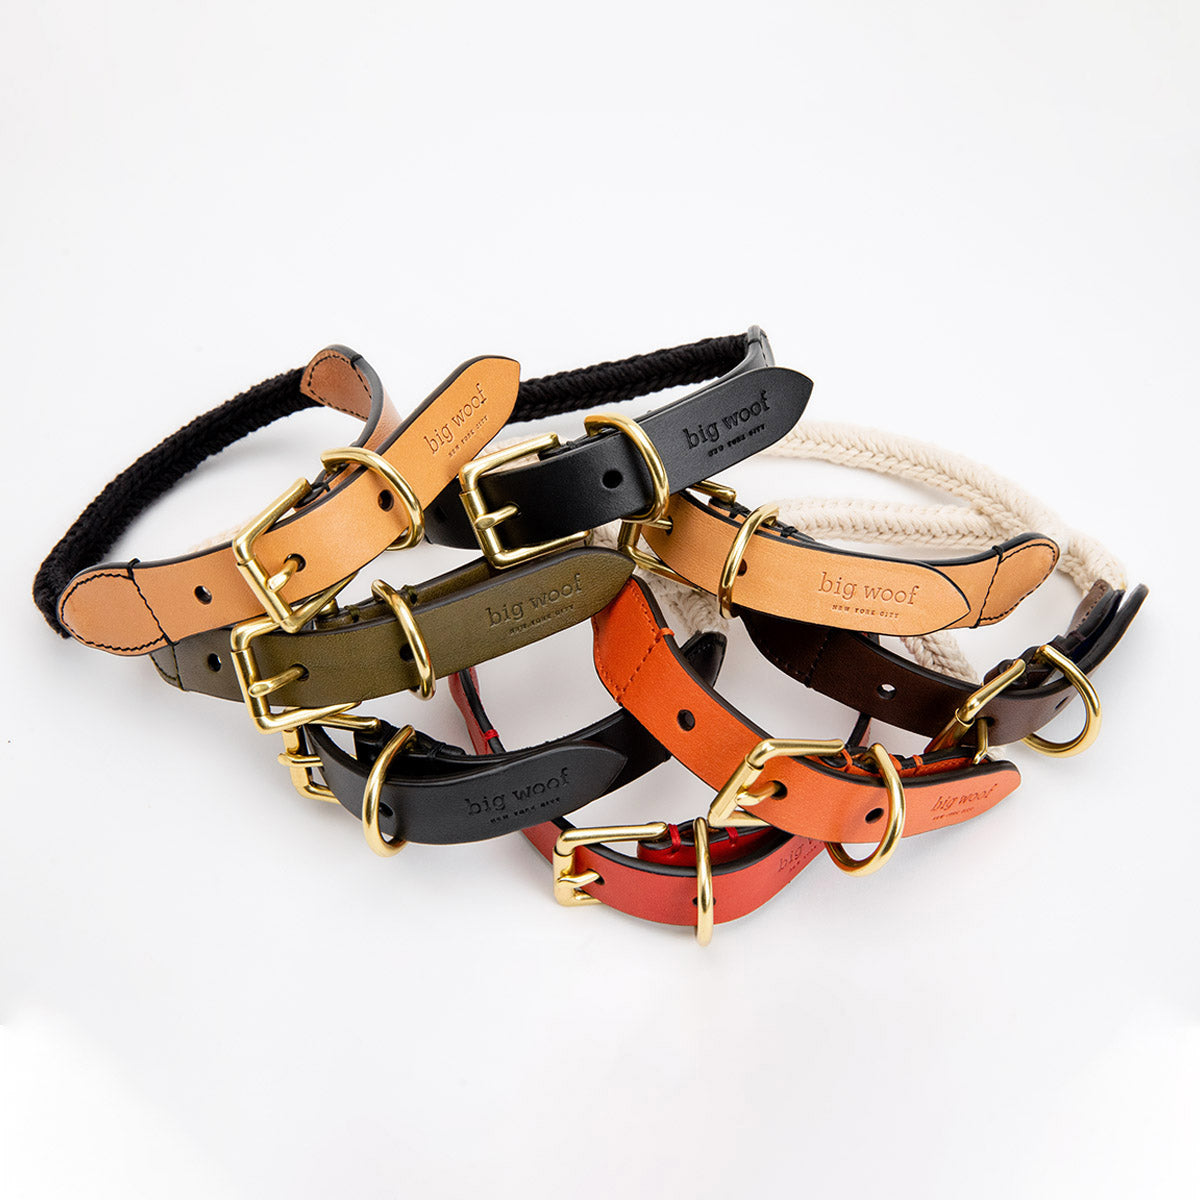 Big Woof cotton webbing and bridle leather dog collar